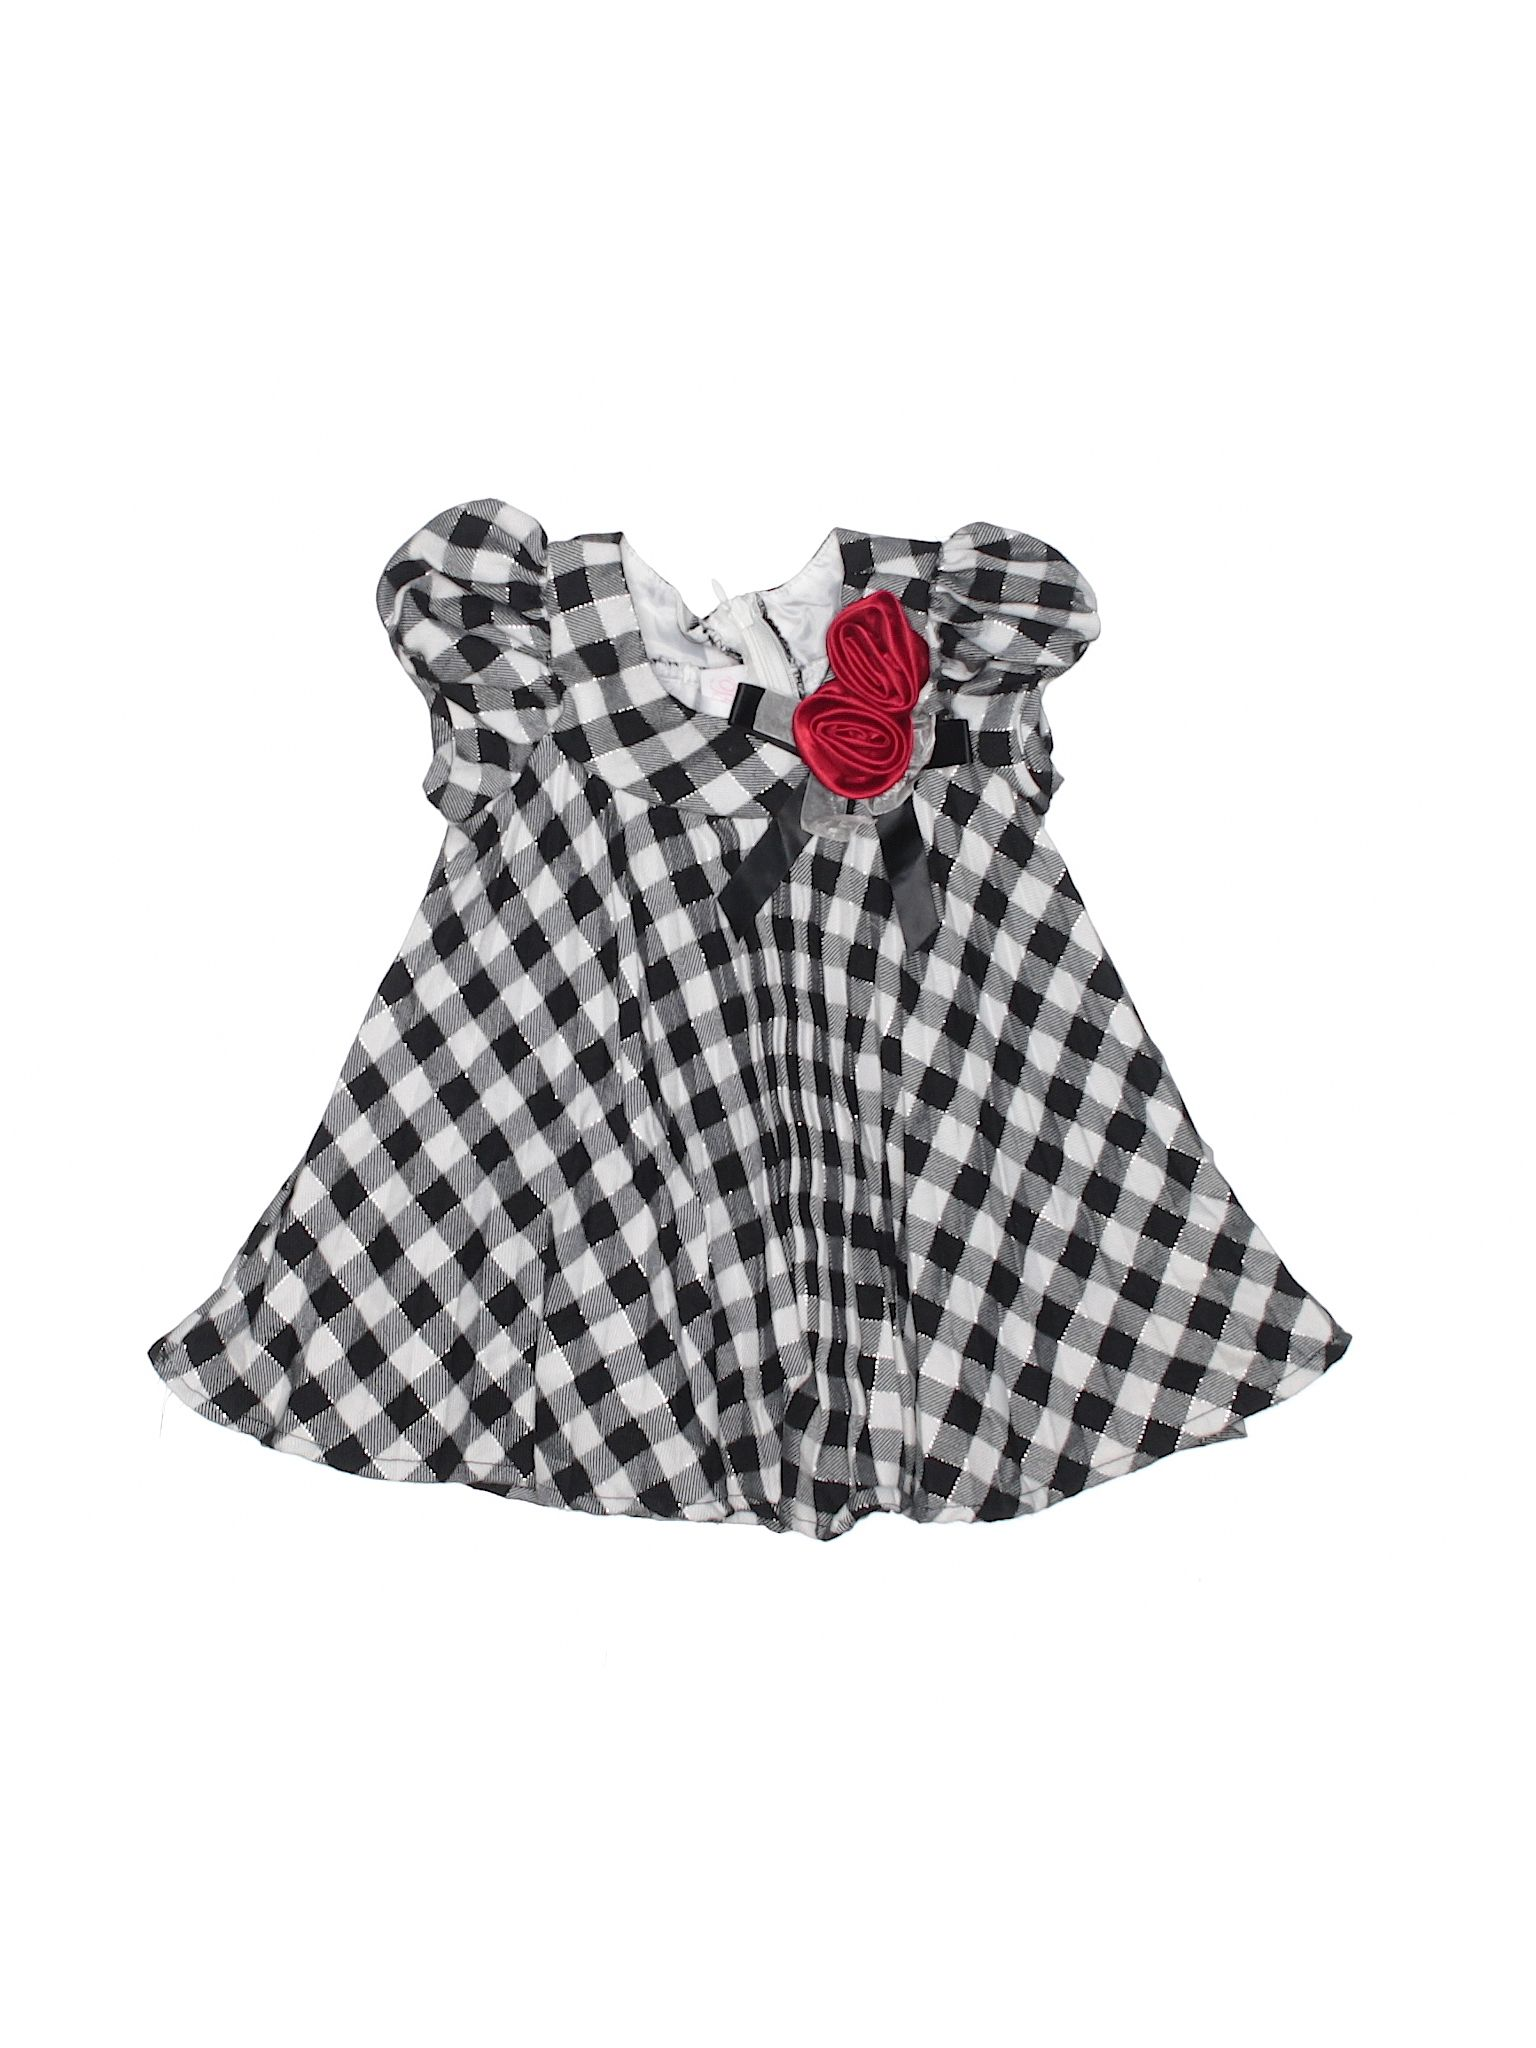 Bonnie Baby Special Occasion Dress Black Girls Skirts & Dresses